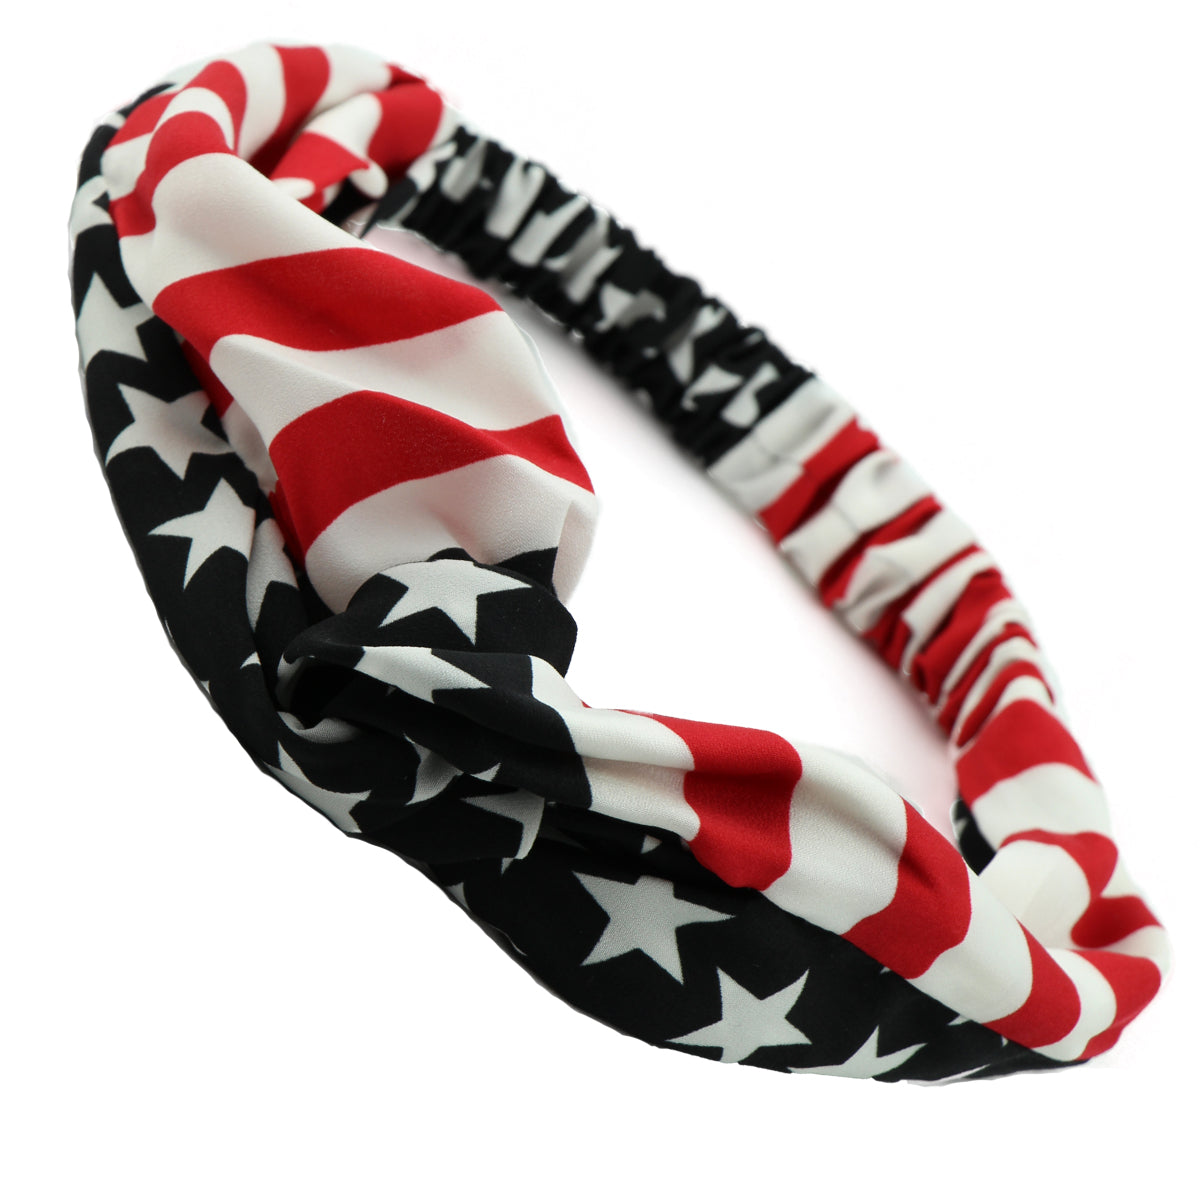 wholesale American flag hair accessories  American Flag Cross Headband Twist head wrap HairBand for teenage girls from factory0723 - SOHOBUCKS CO.,LIMITED